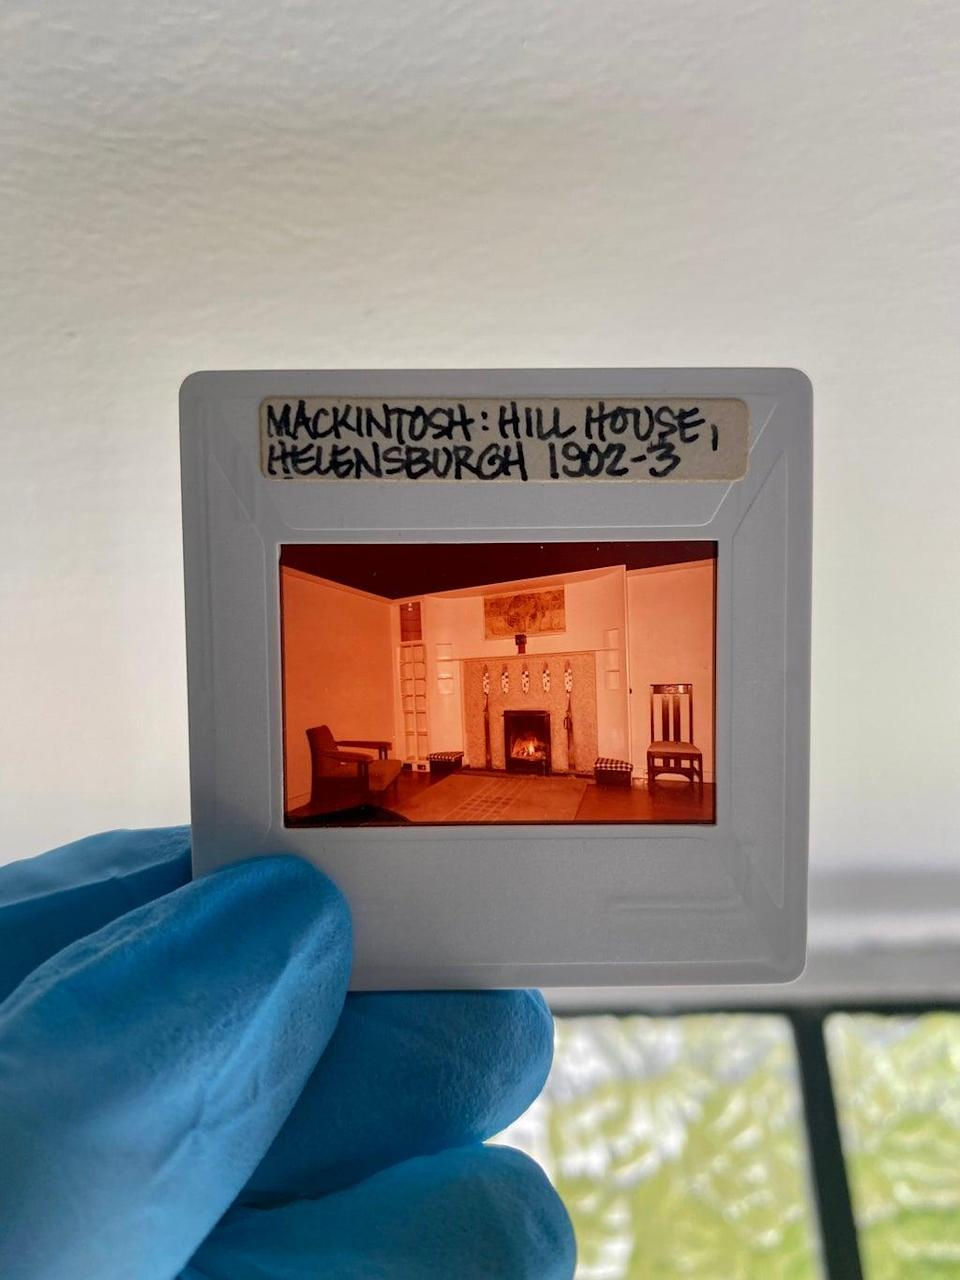 The slides show the Hill House in the 1970s (Taylah Egbers/NTS/PA)